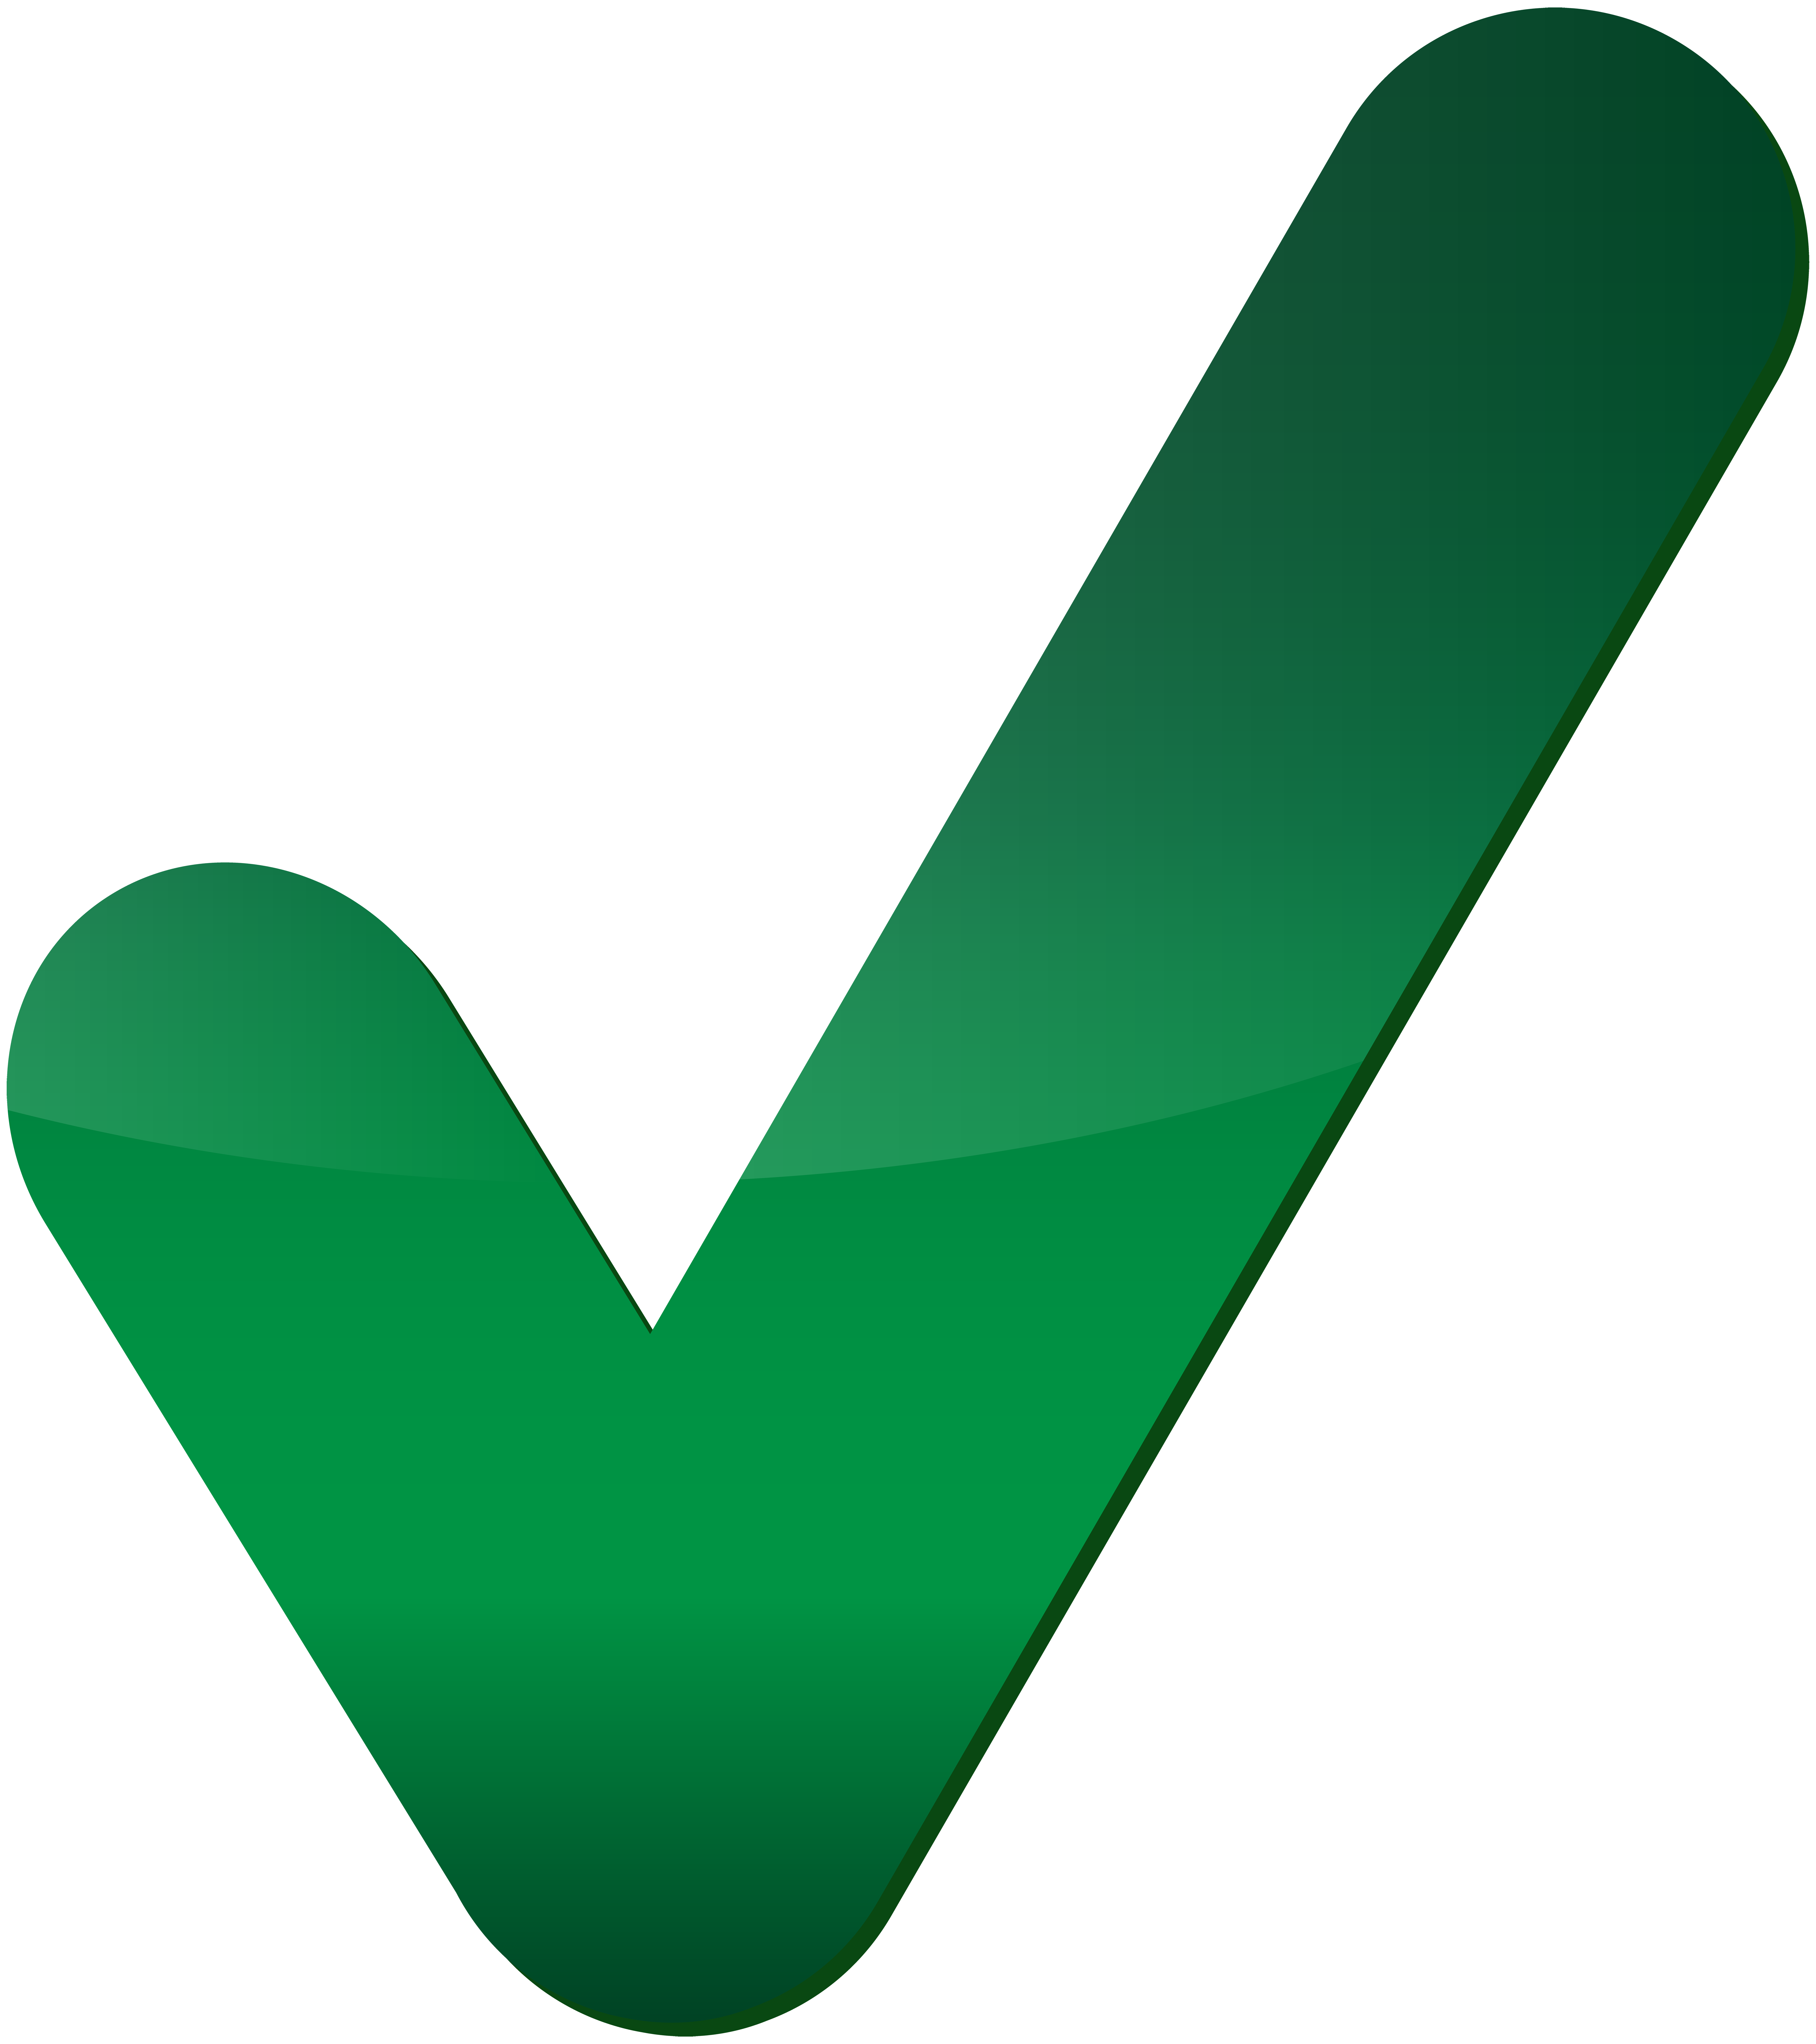 Green check mark png. Clip art image gallery